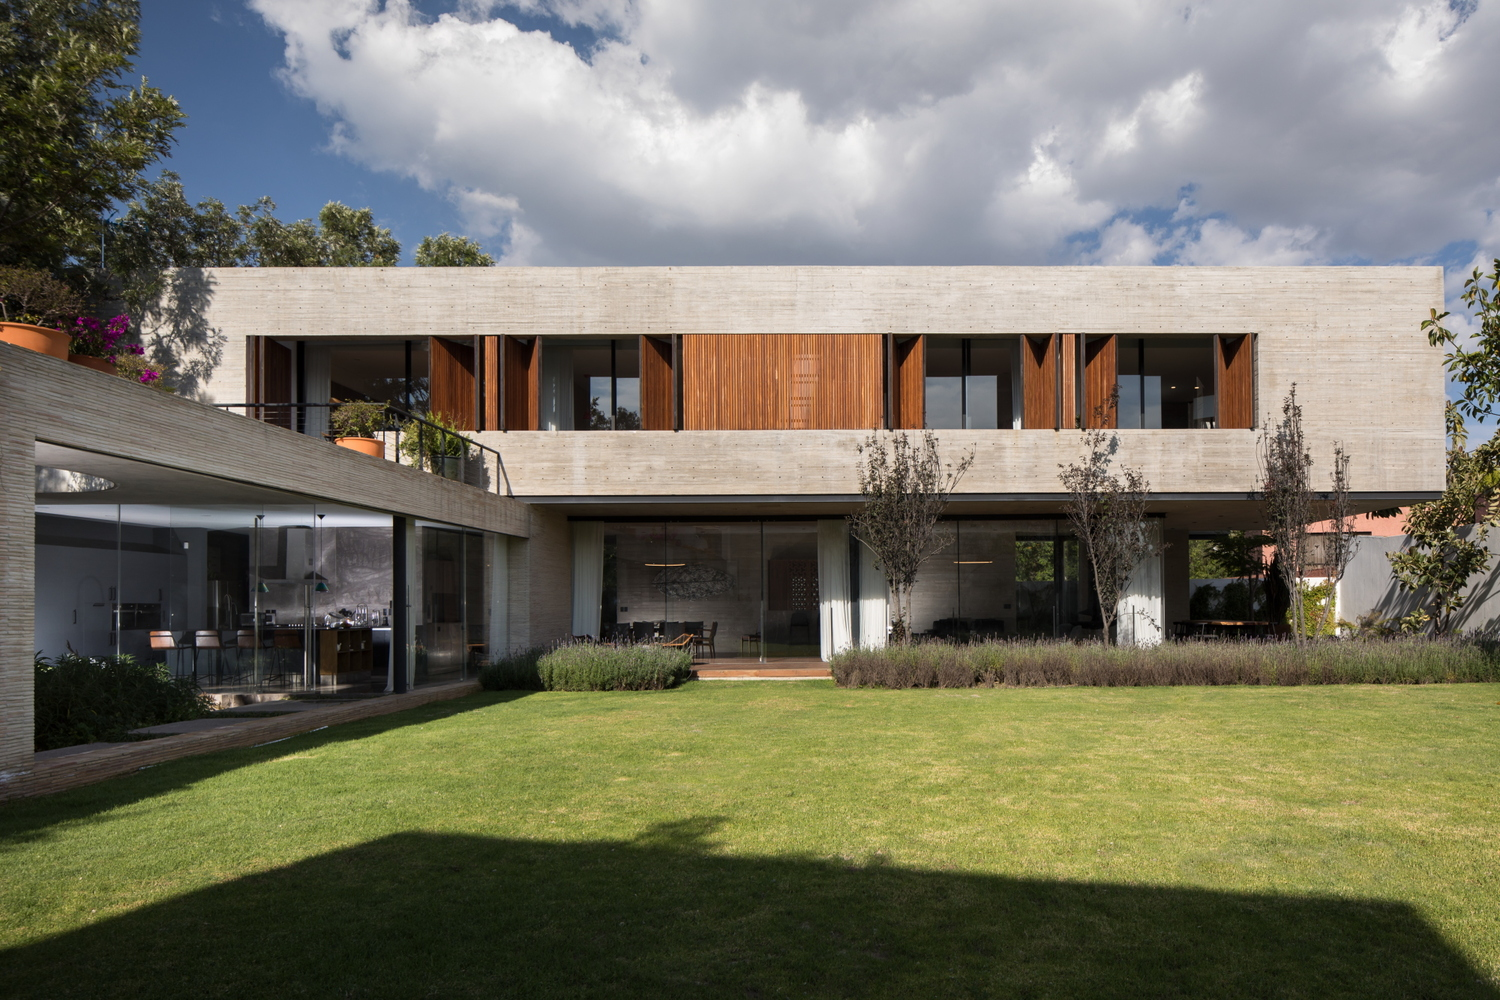 1558944263 467 sustainable house translates local culture into a contemporary design - Sustainable House Translates Local Culture Into A Contemporary Design